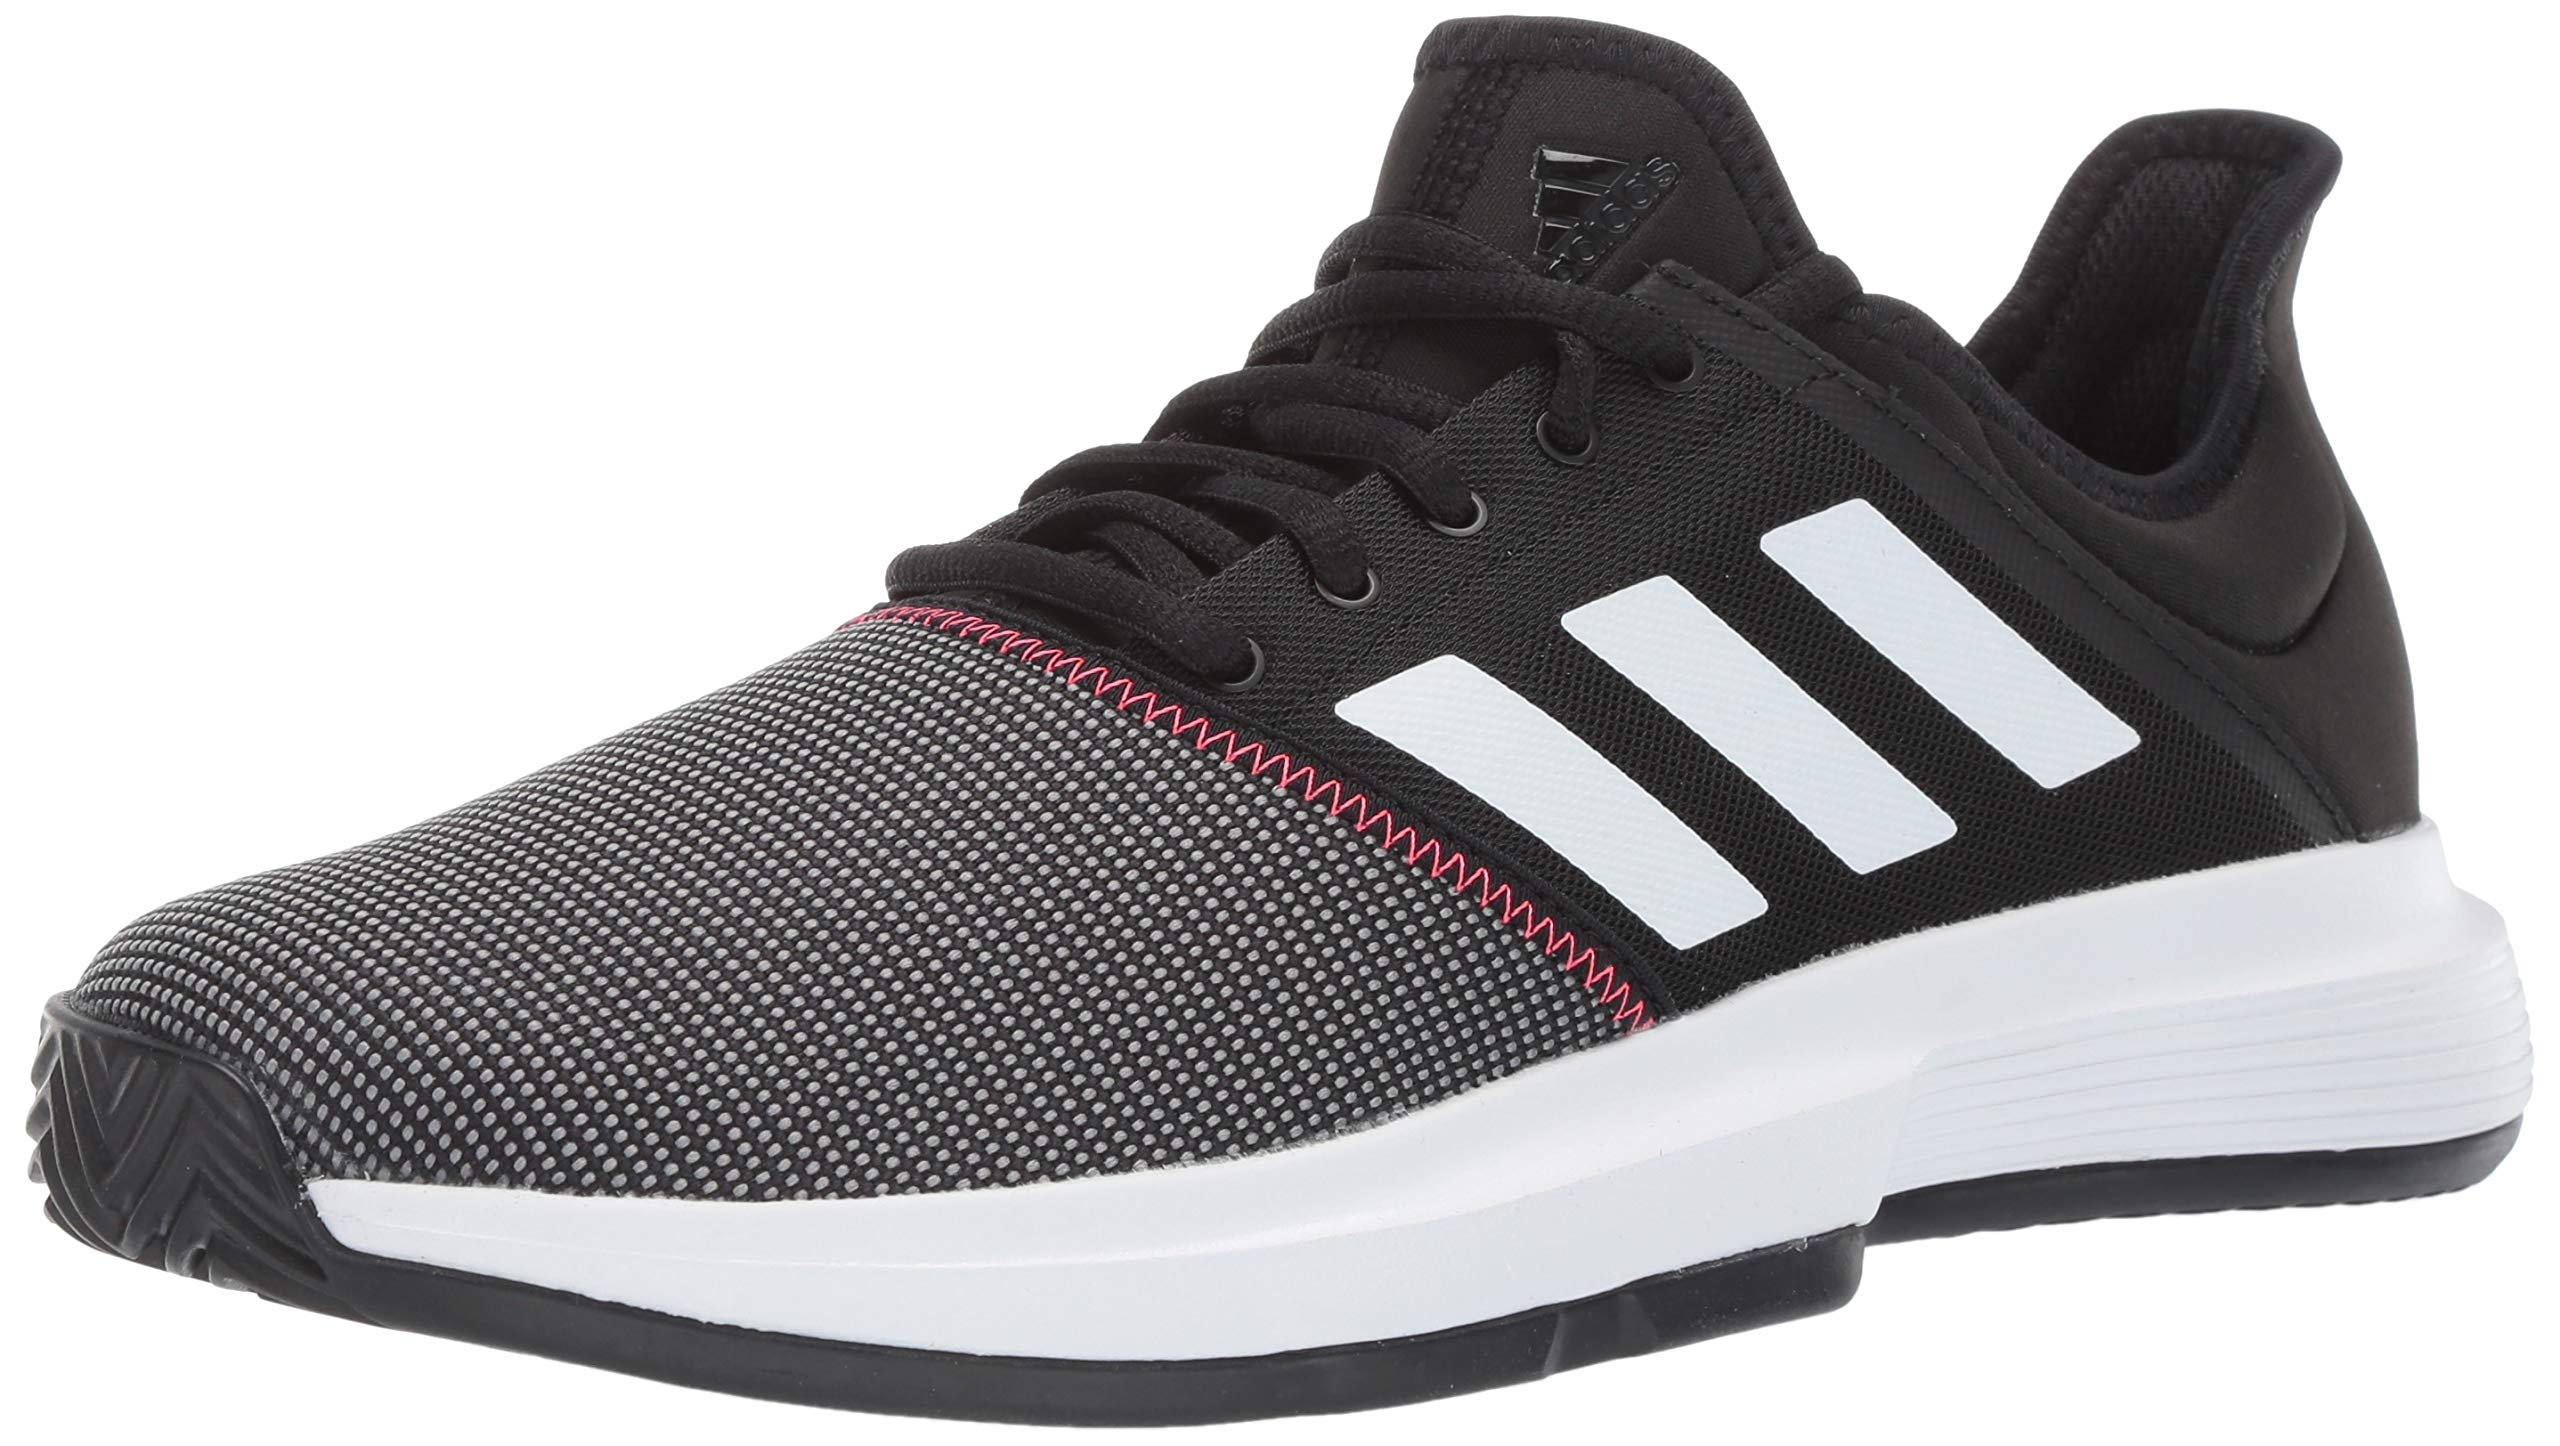 adidas Men's Gamecourt, Black/White/Shock red, 6.5 M US by adidas (Image #1)